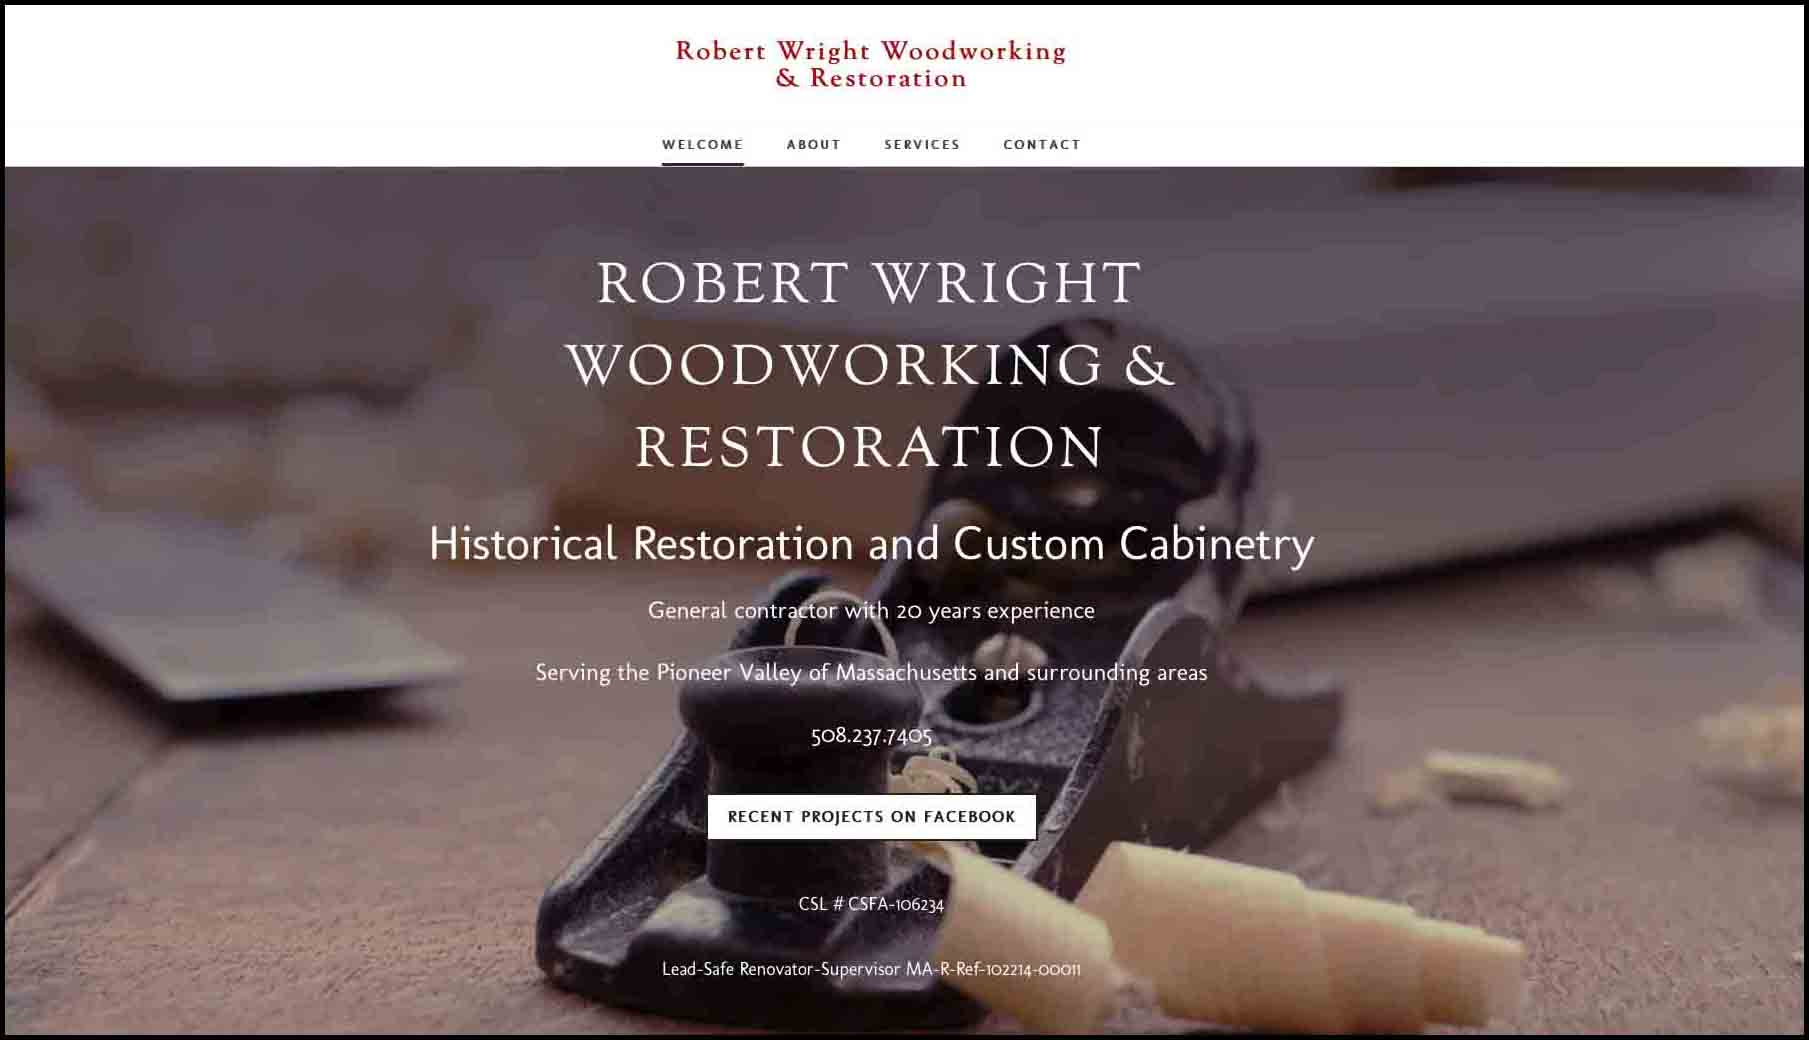 Robert Wright Woodworking & Restoration